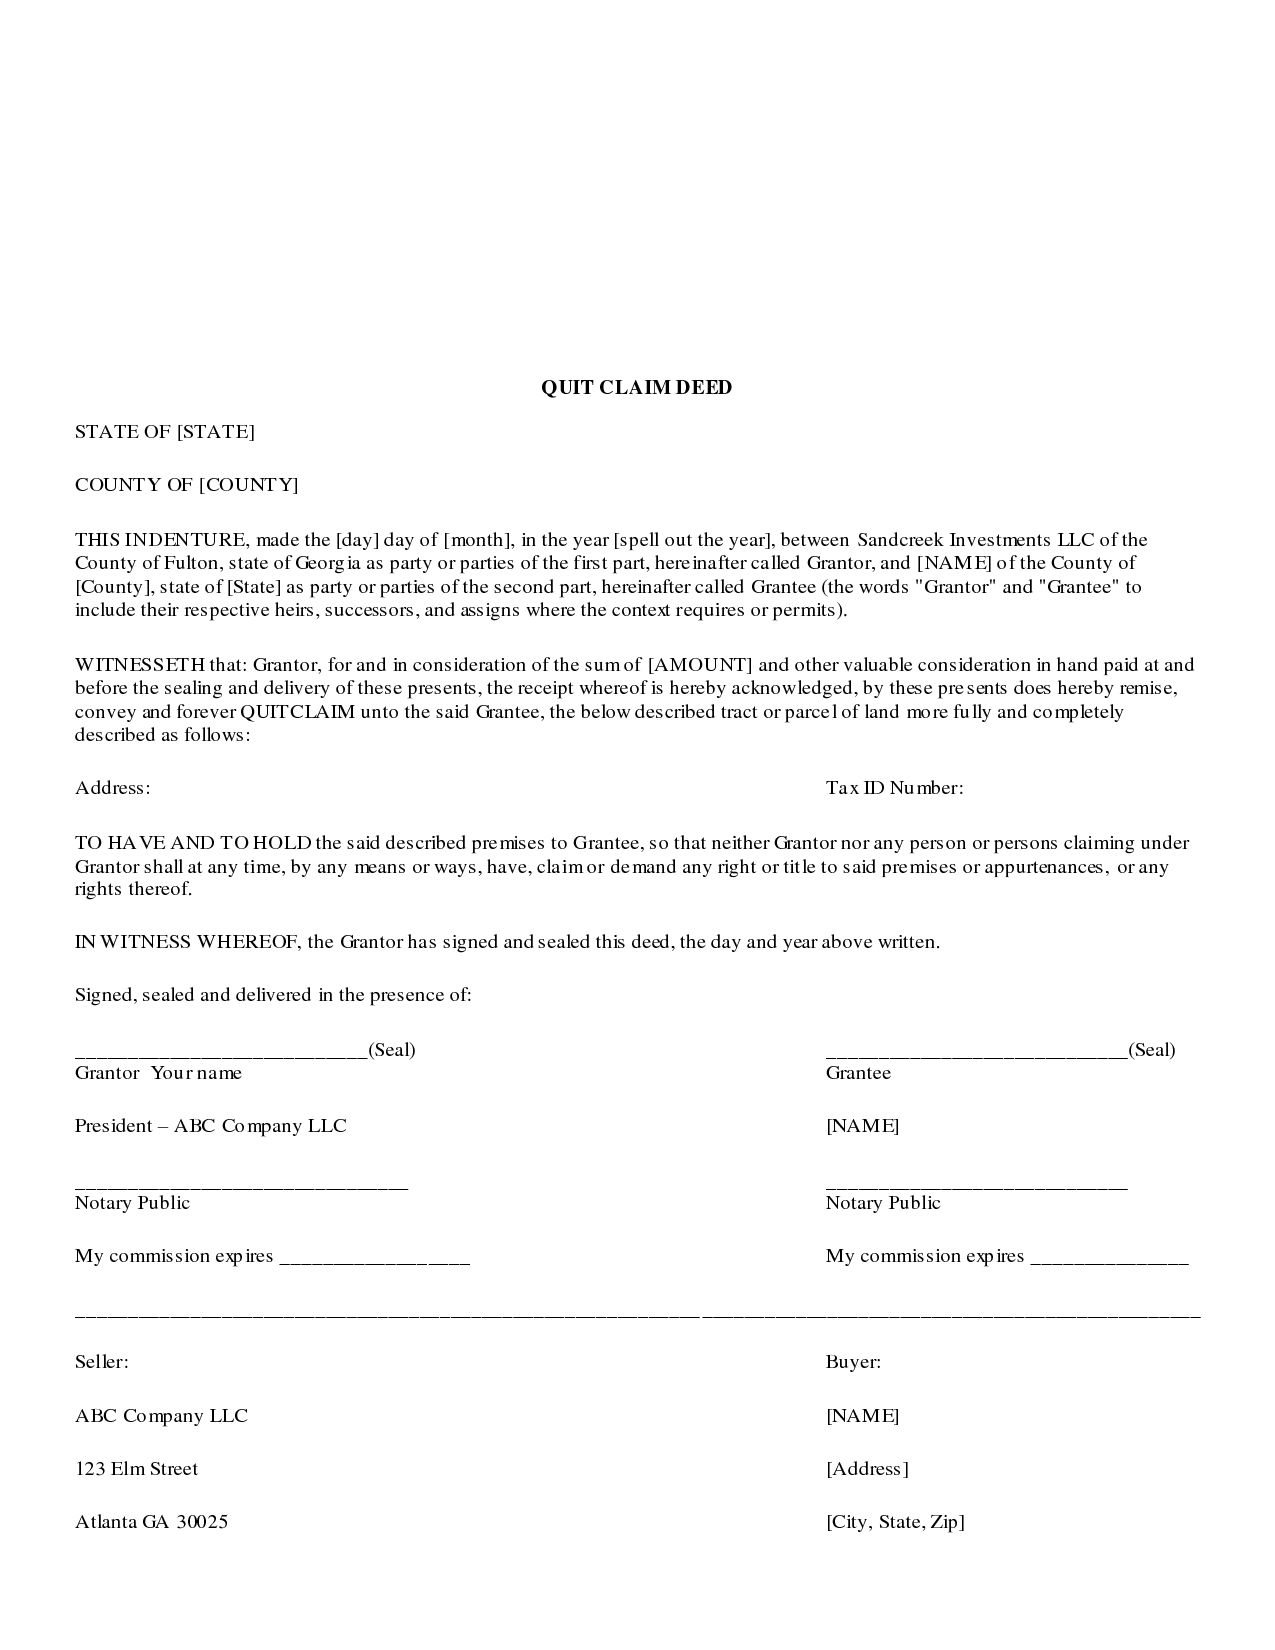 Quit Claim Deed Form Free Download